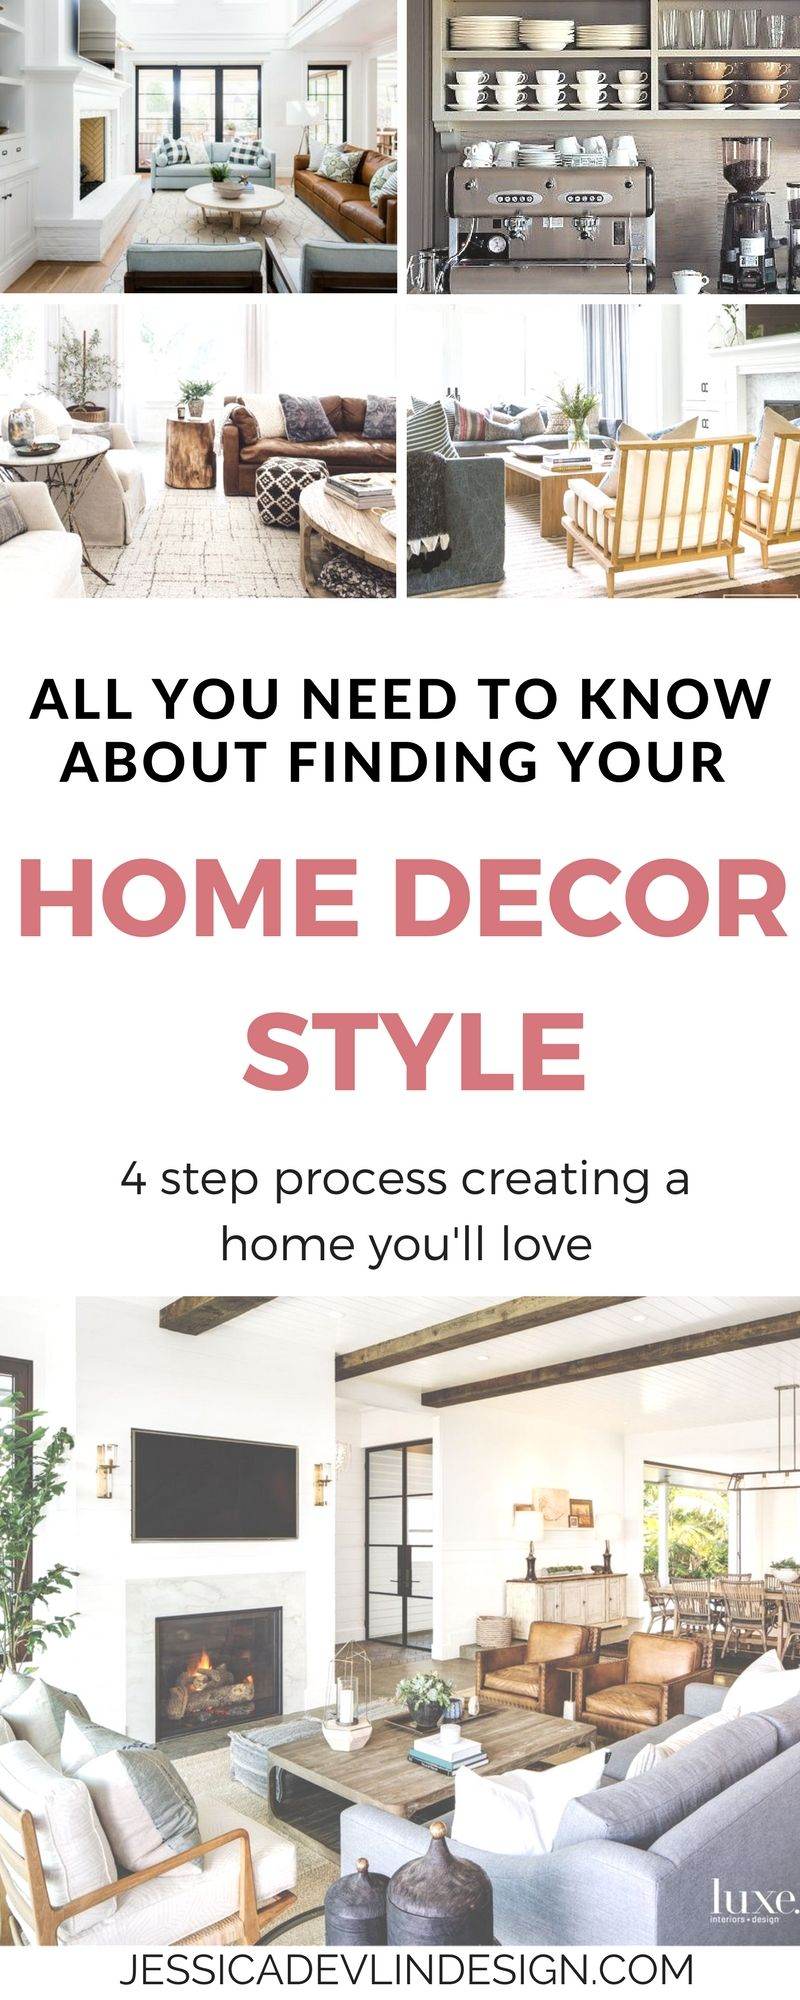 Home Decor Design Style Love Your Beautiful